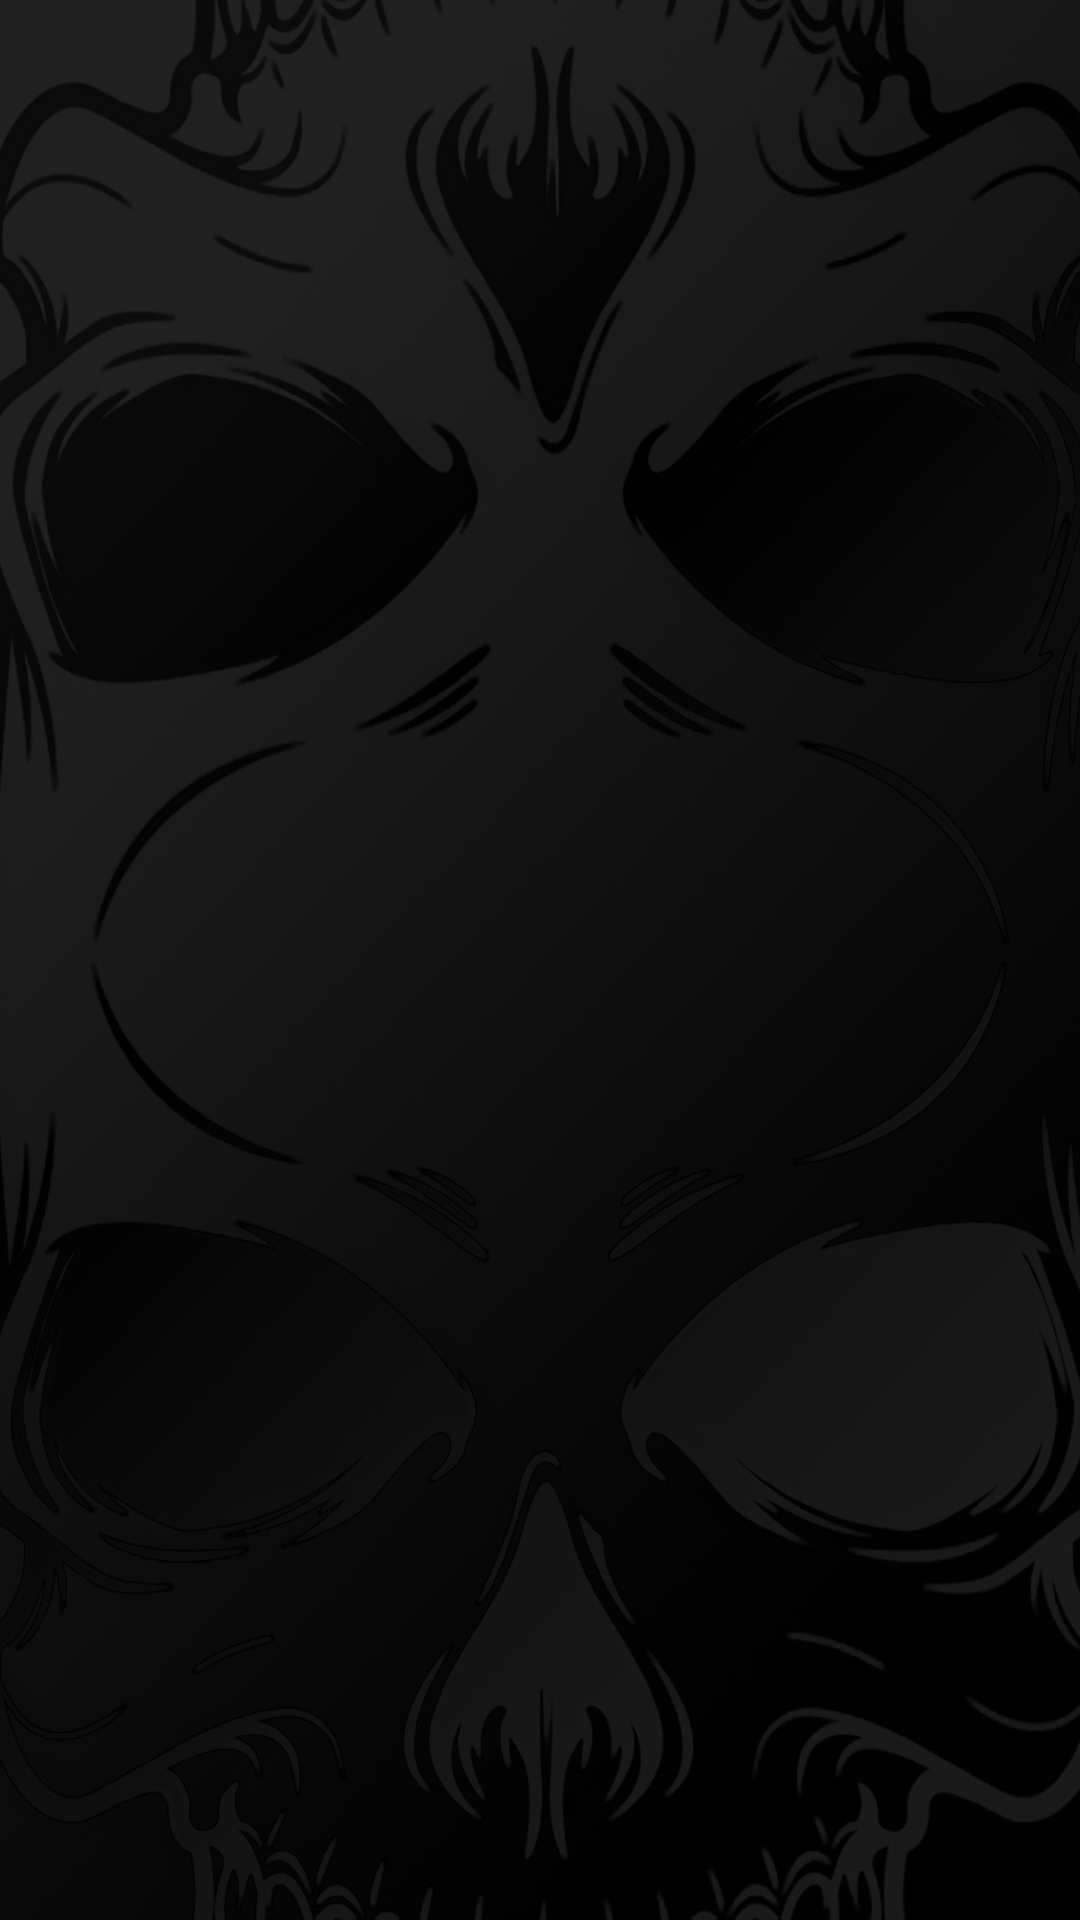 Download Our HD Stealth Skull Wallpaper For Android Phones    0533